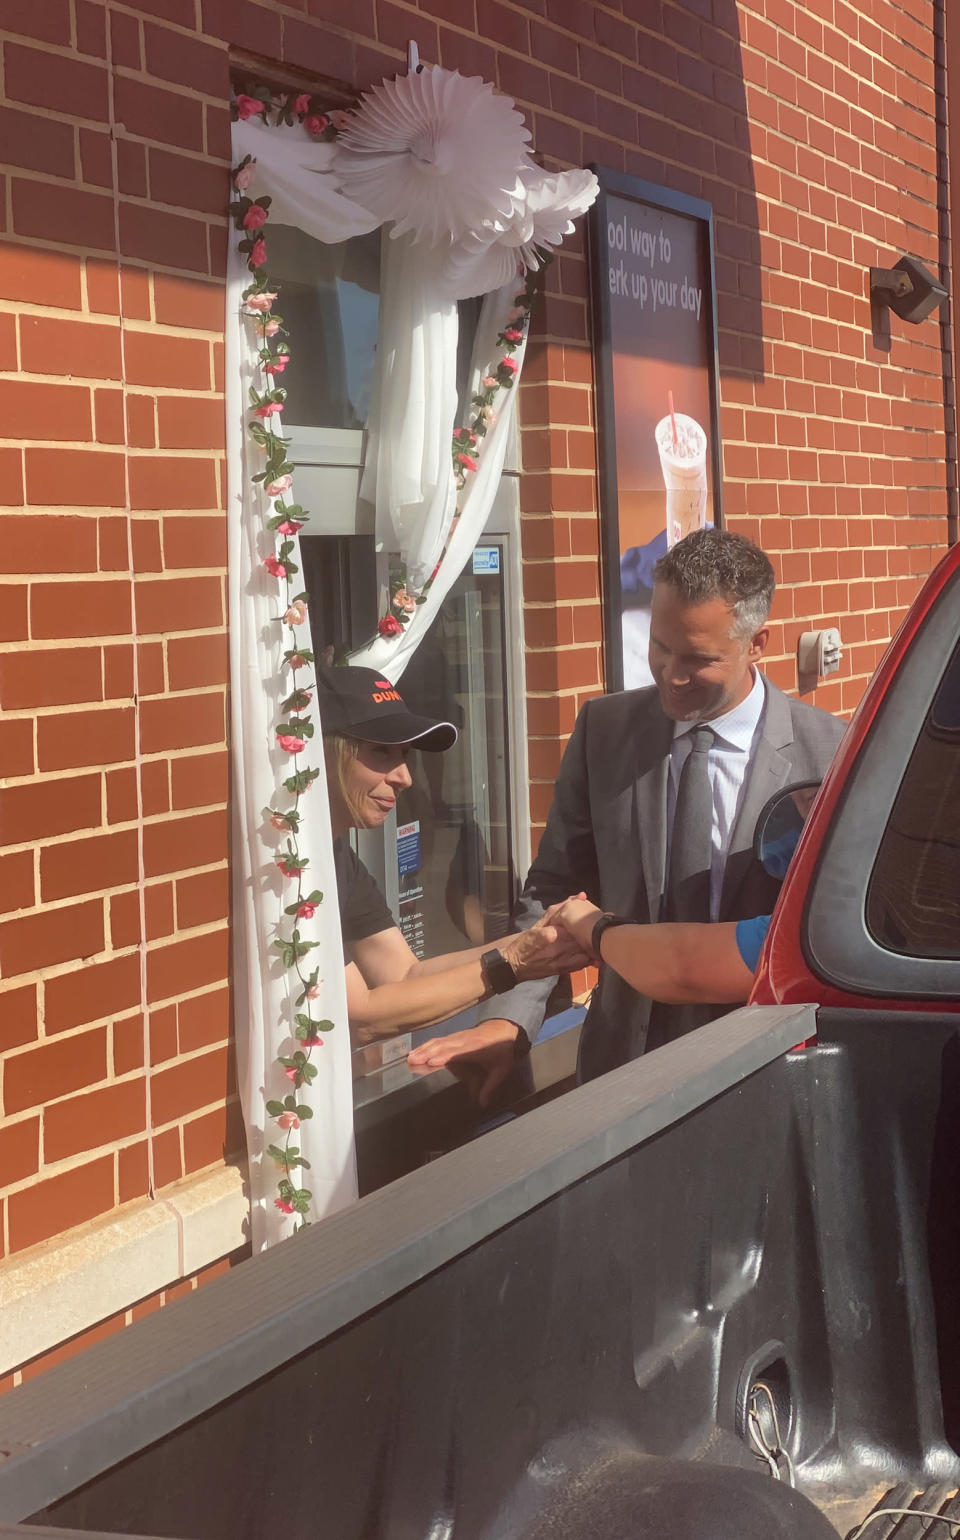 Sugar Good and John Thompson wed this month in the very place they first met: the Dunkin' drive-thru. (Courtesy Jillian Gallagher and Emma Burke)